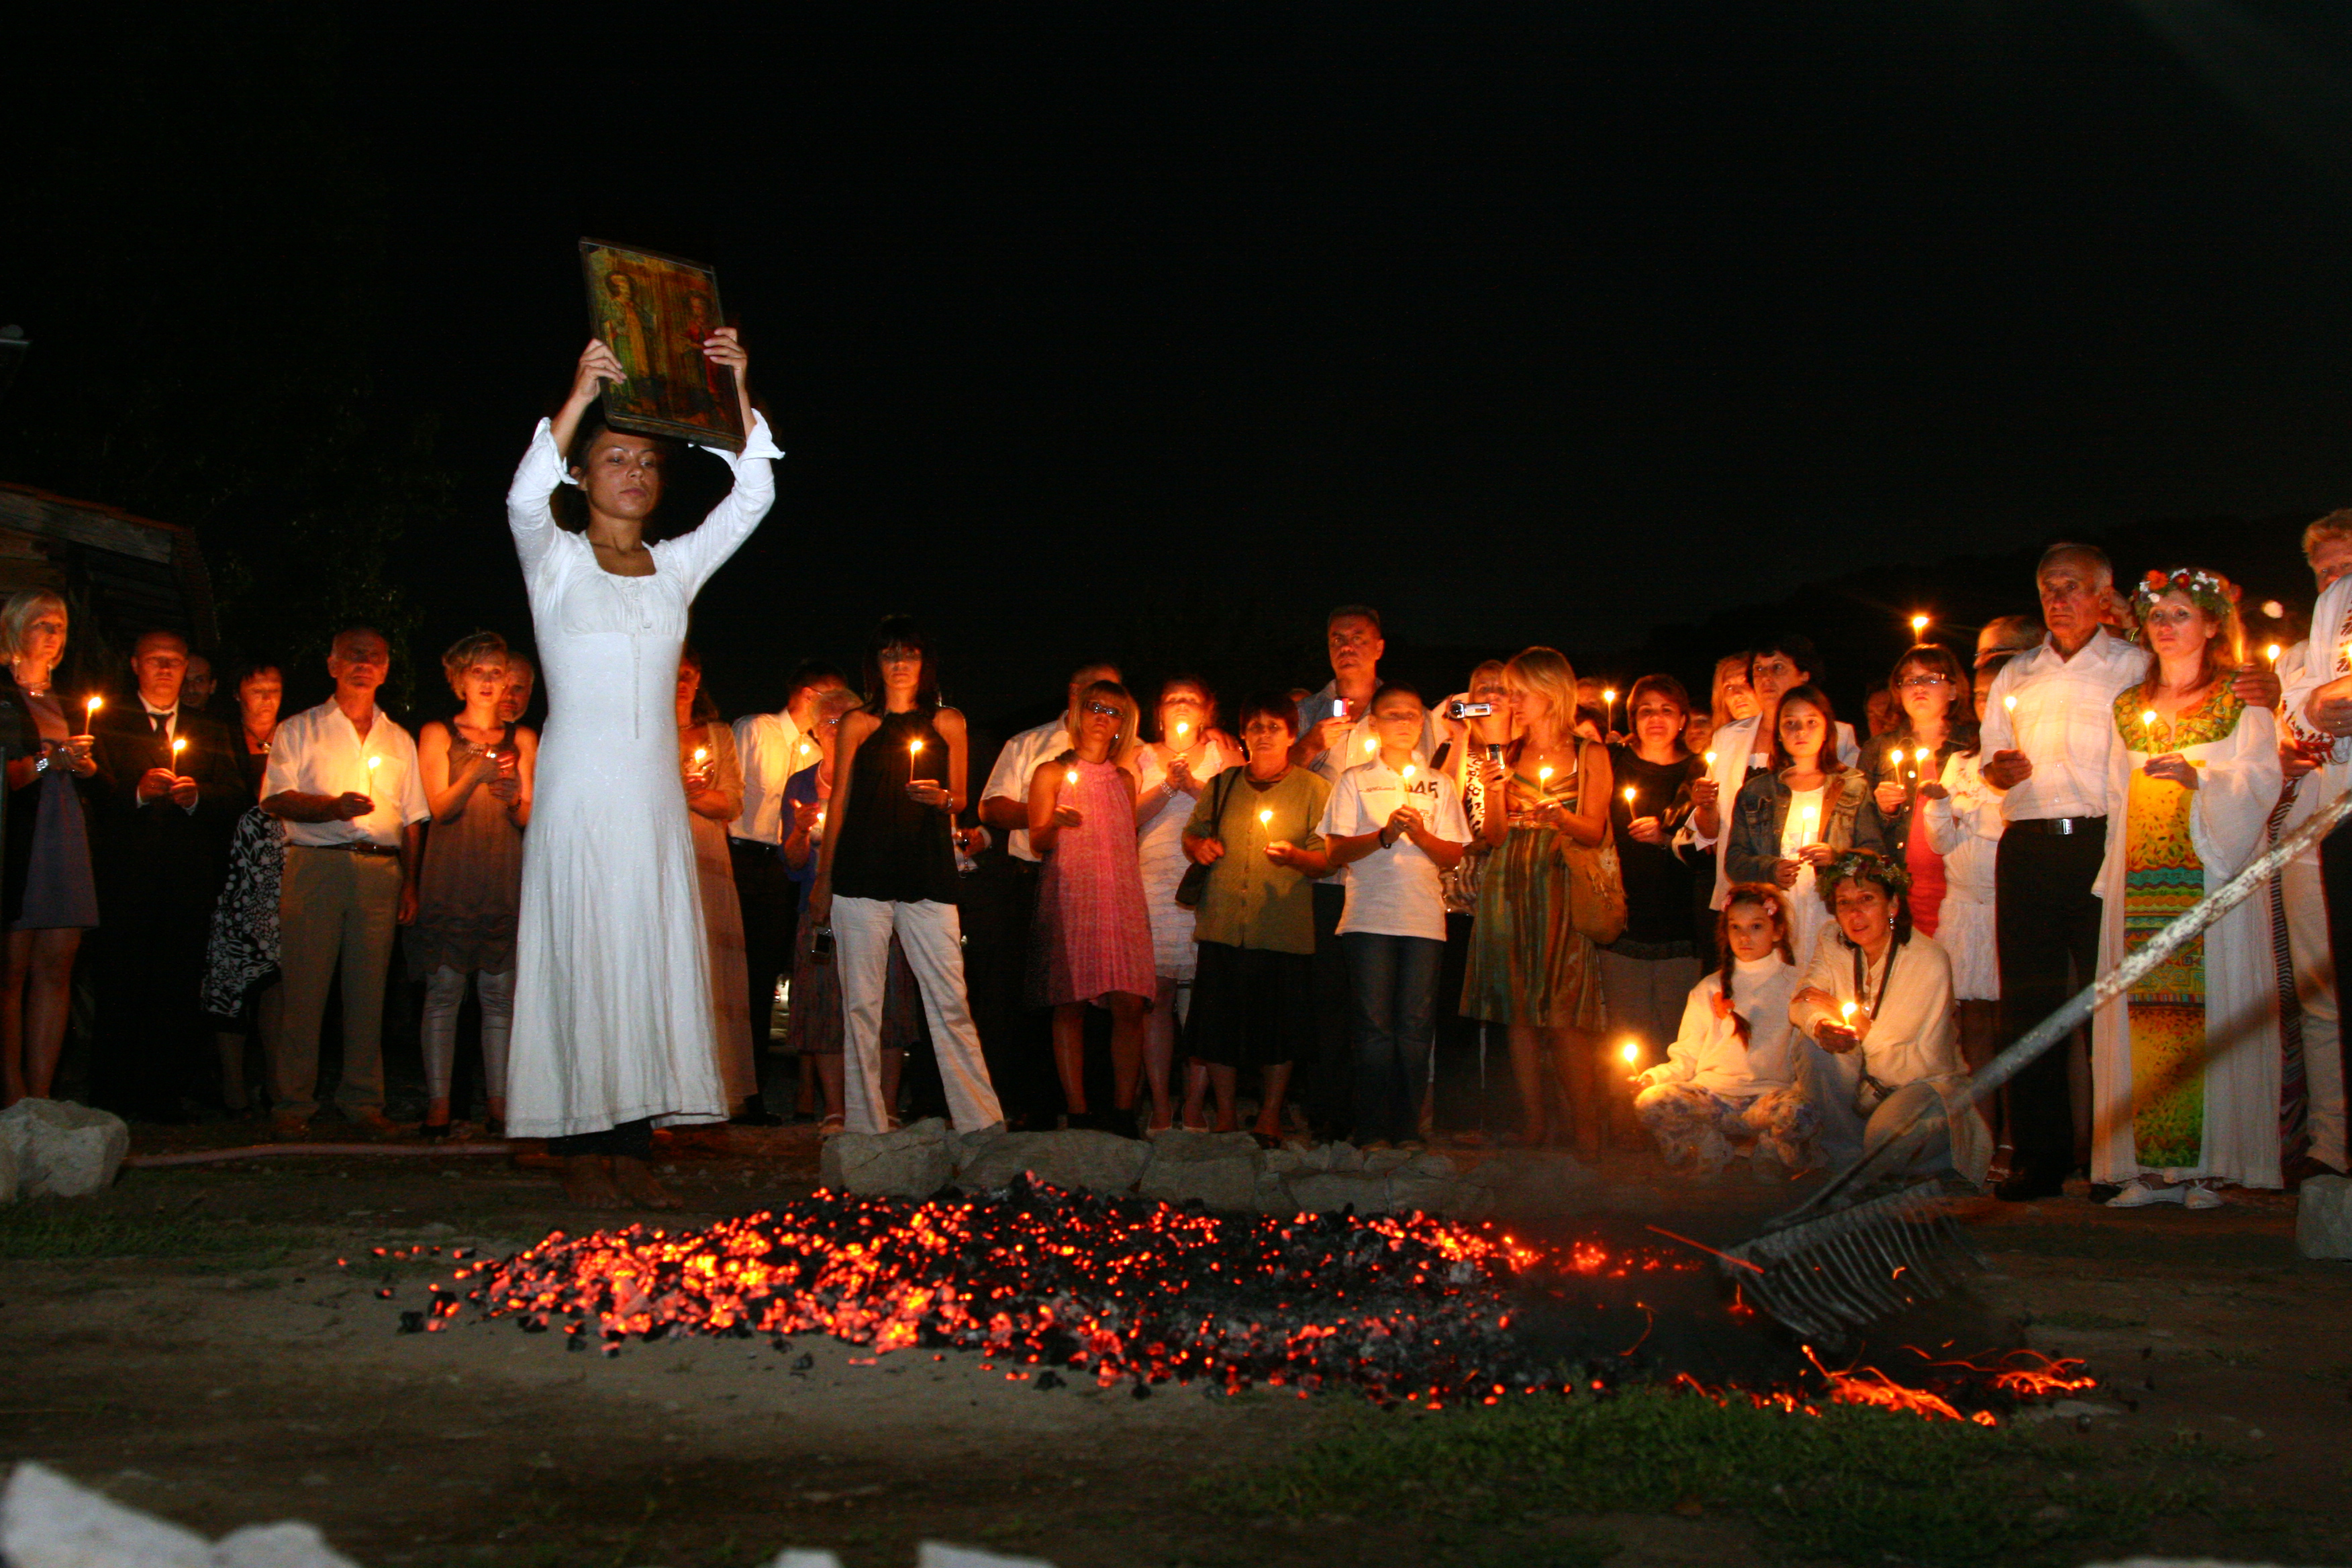 Nestinari-Dances-Fire-walking-Strandzha-Bulgaria